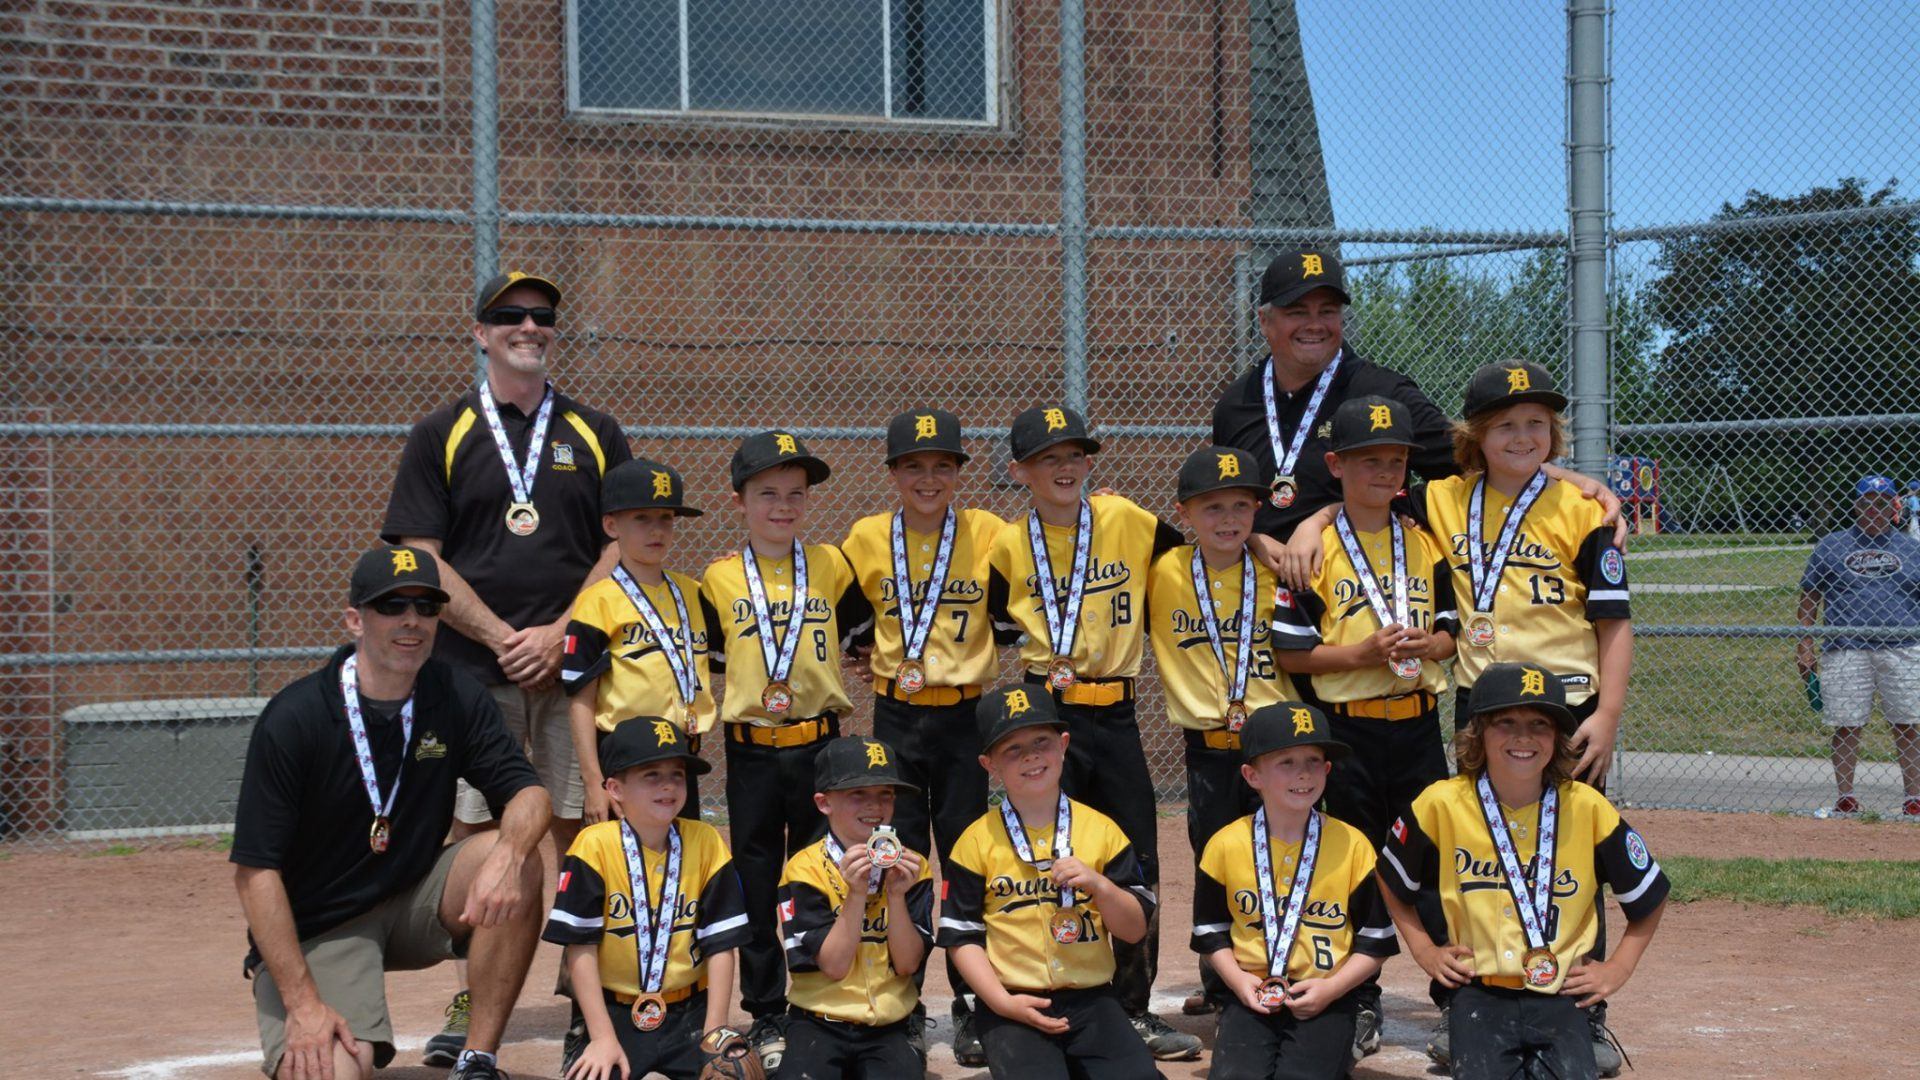 Congratulations to Dundas Little League's All-Star T-Ball team